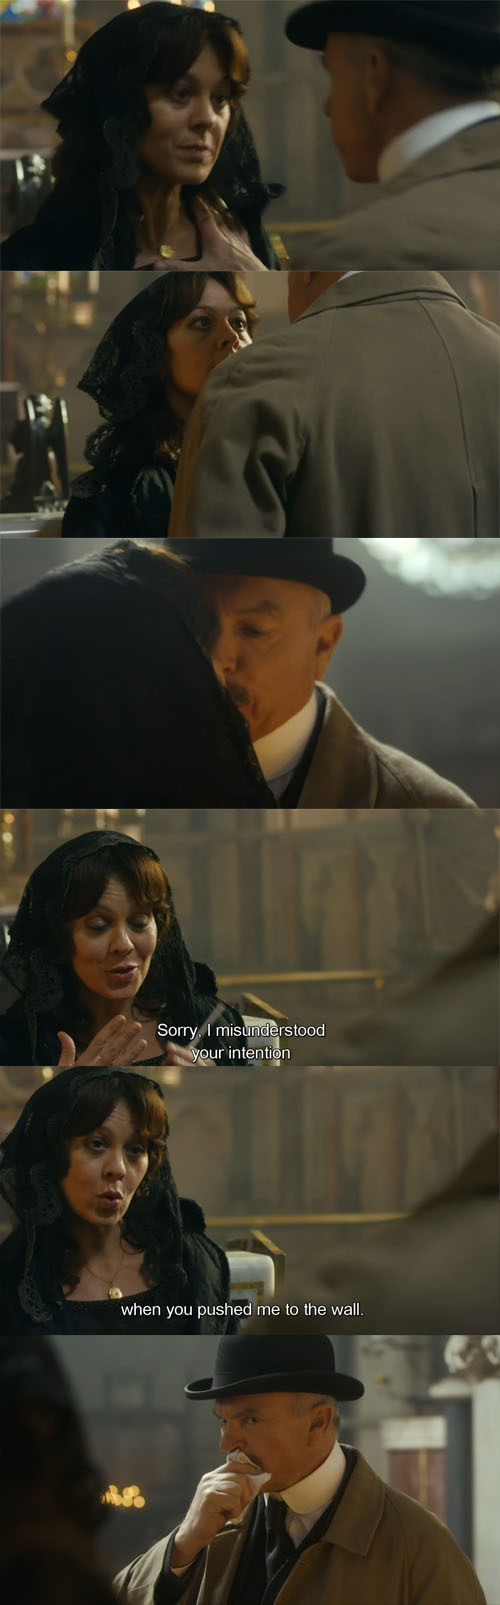 Aunt Polly sure is a daring woman! She played nice against this Inspector...